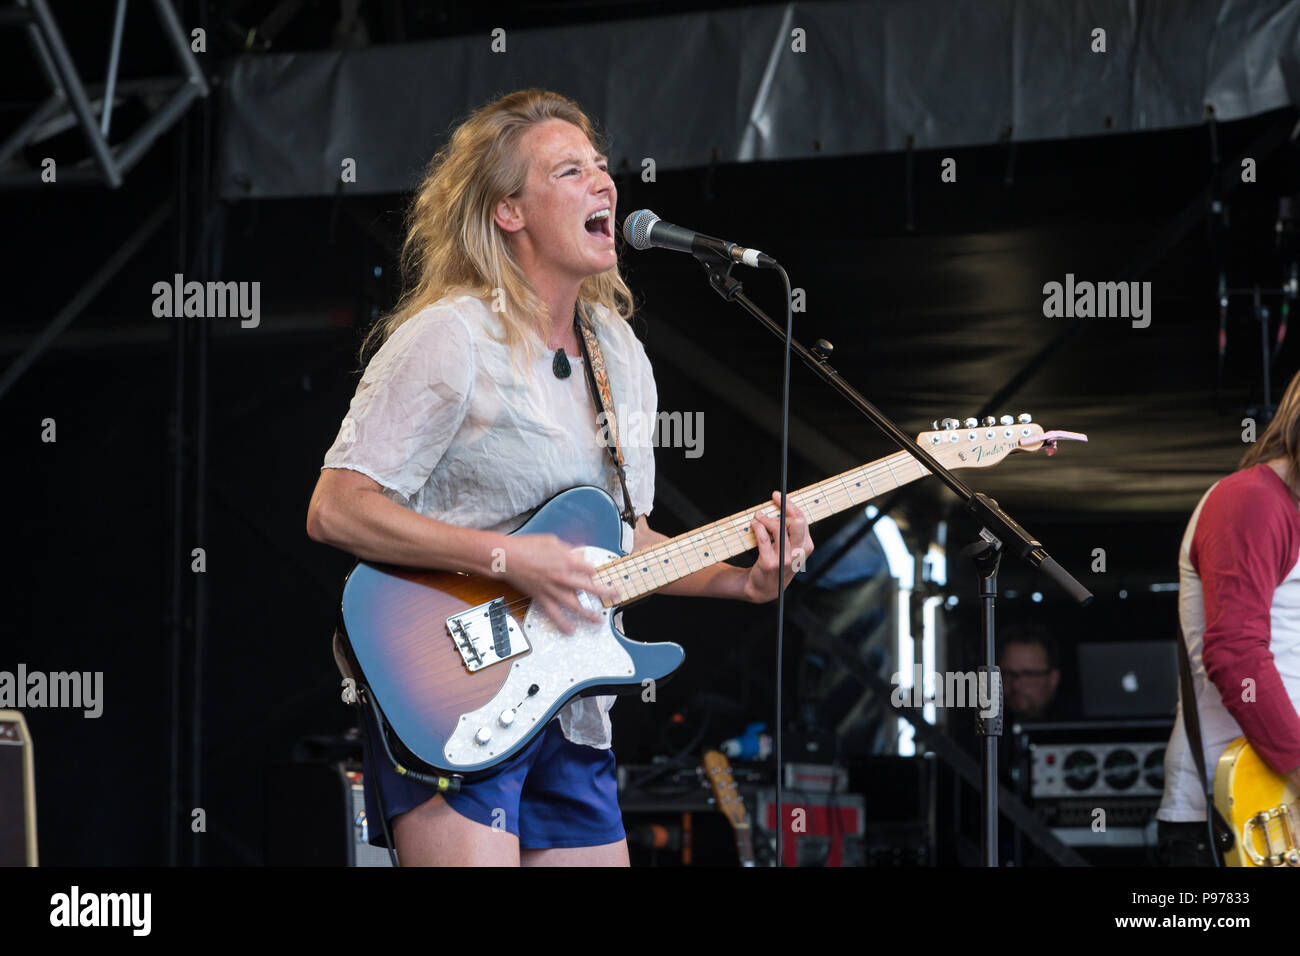 Lissie performs at the 2018 Cornbury Festival, Great Tew, Oxfordshire  15th July 2018. Elisabeth Corrin Maurus (born November 21, 1982), known as Lissie, is an American singer-songwriter. She released her debut EP, 'Why You Runnin'', in November 2009. Her debut album, Catching a Tiger, was released in June 2010. - Stock Image